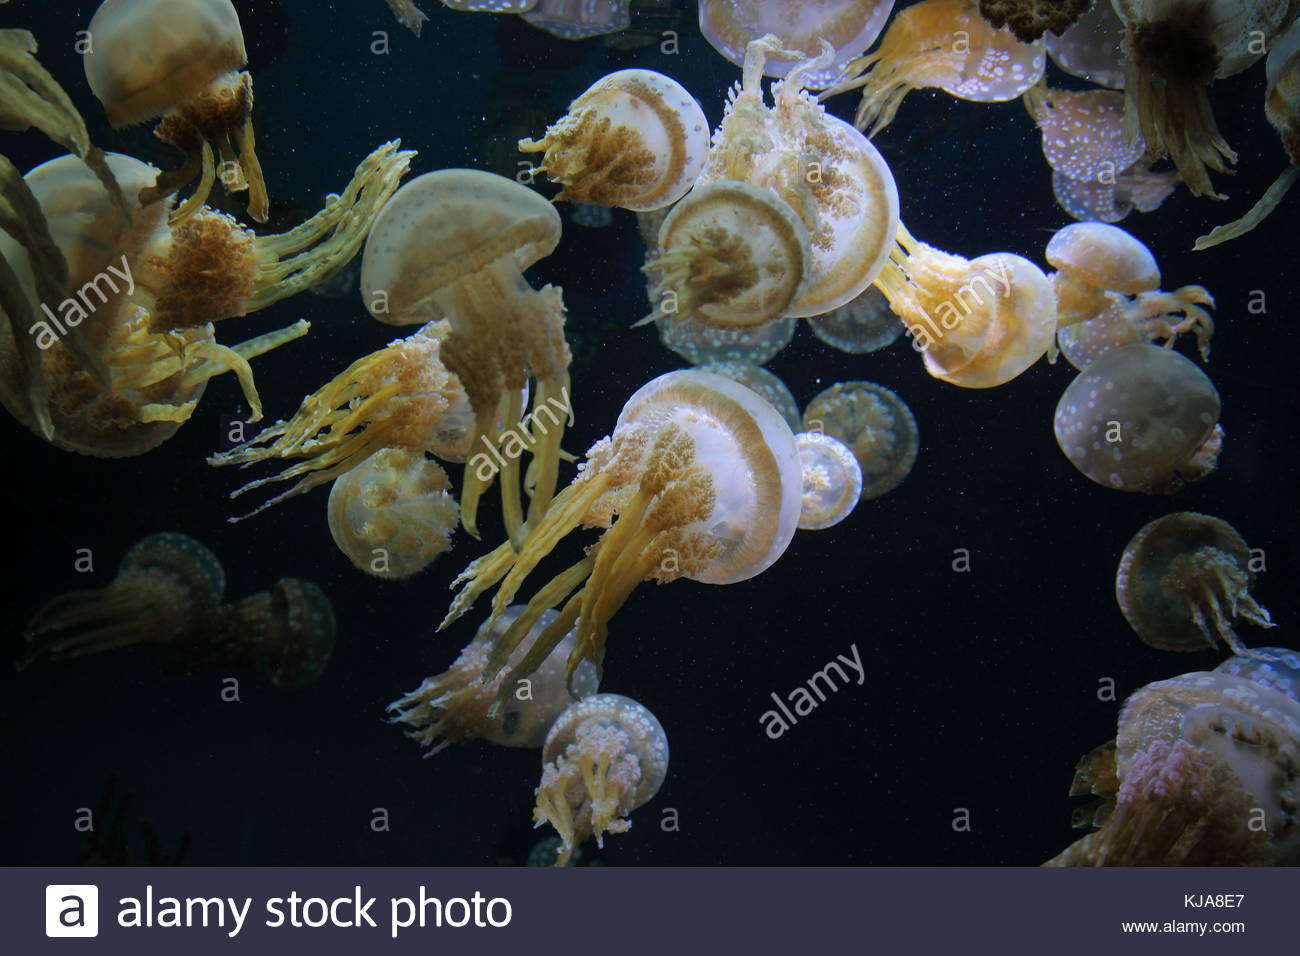 White spotted jelly - Stock Image